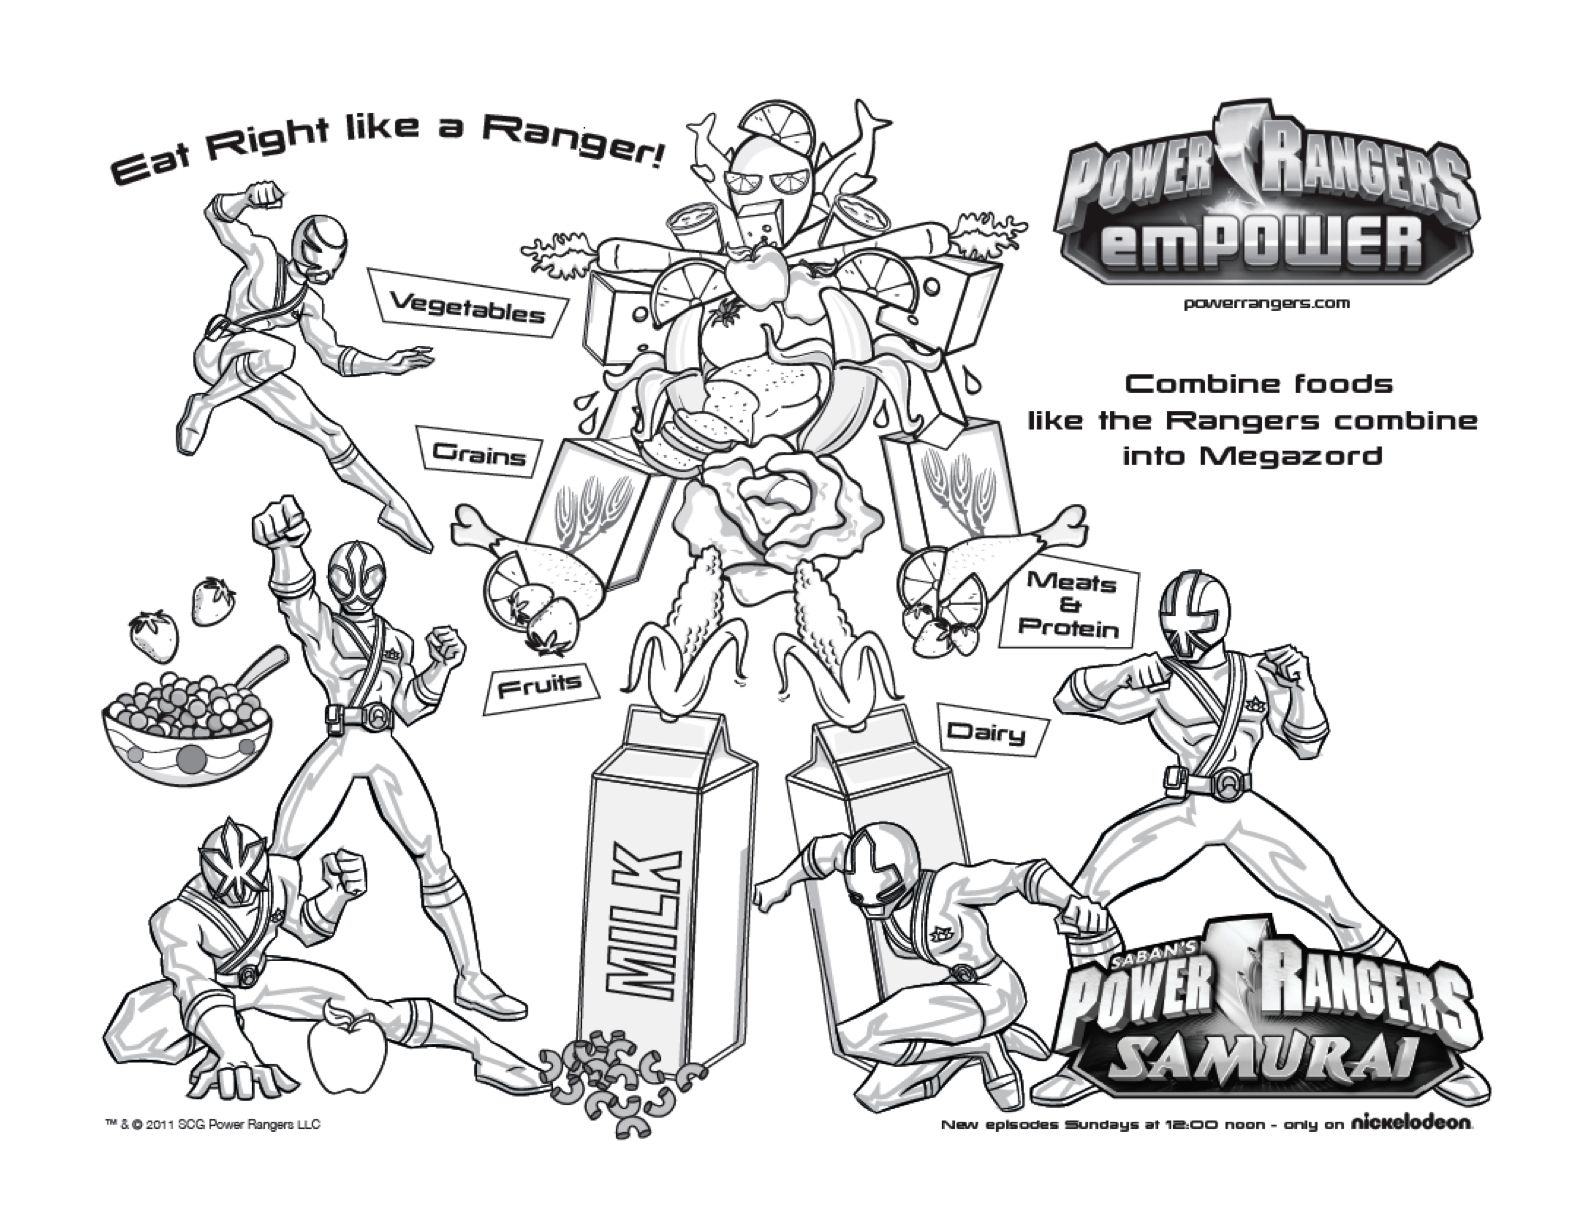 power rangers coloring pages - Free Large Images | mostafa ...